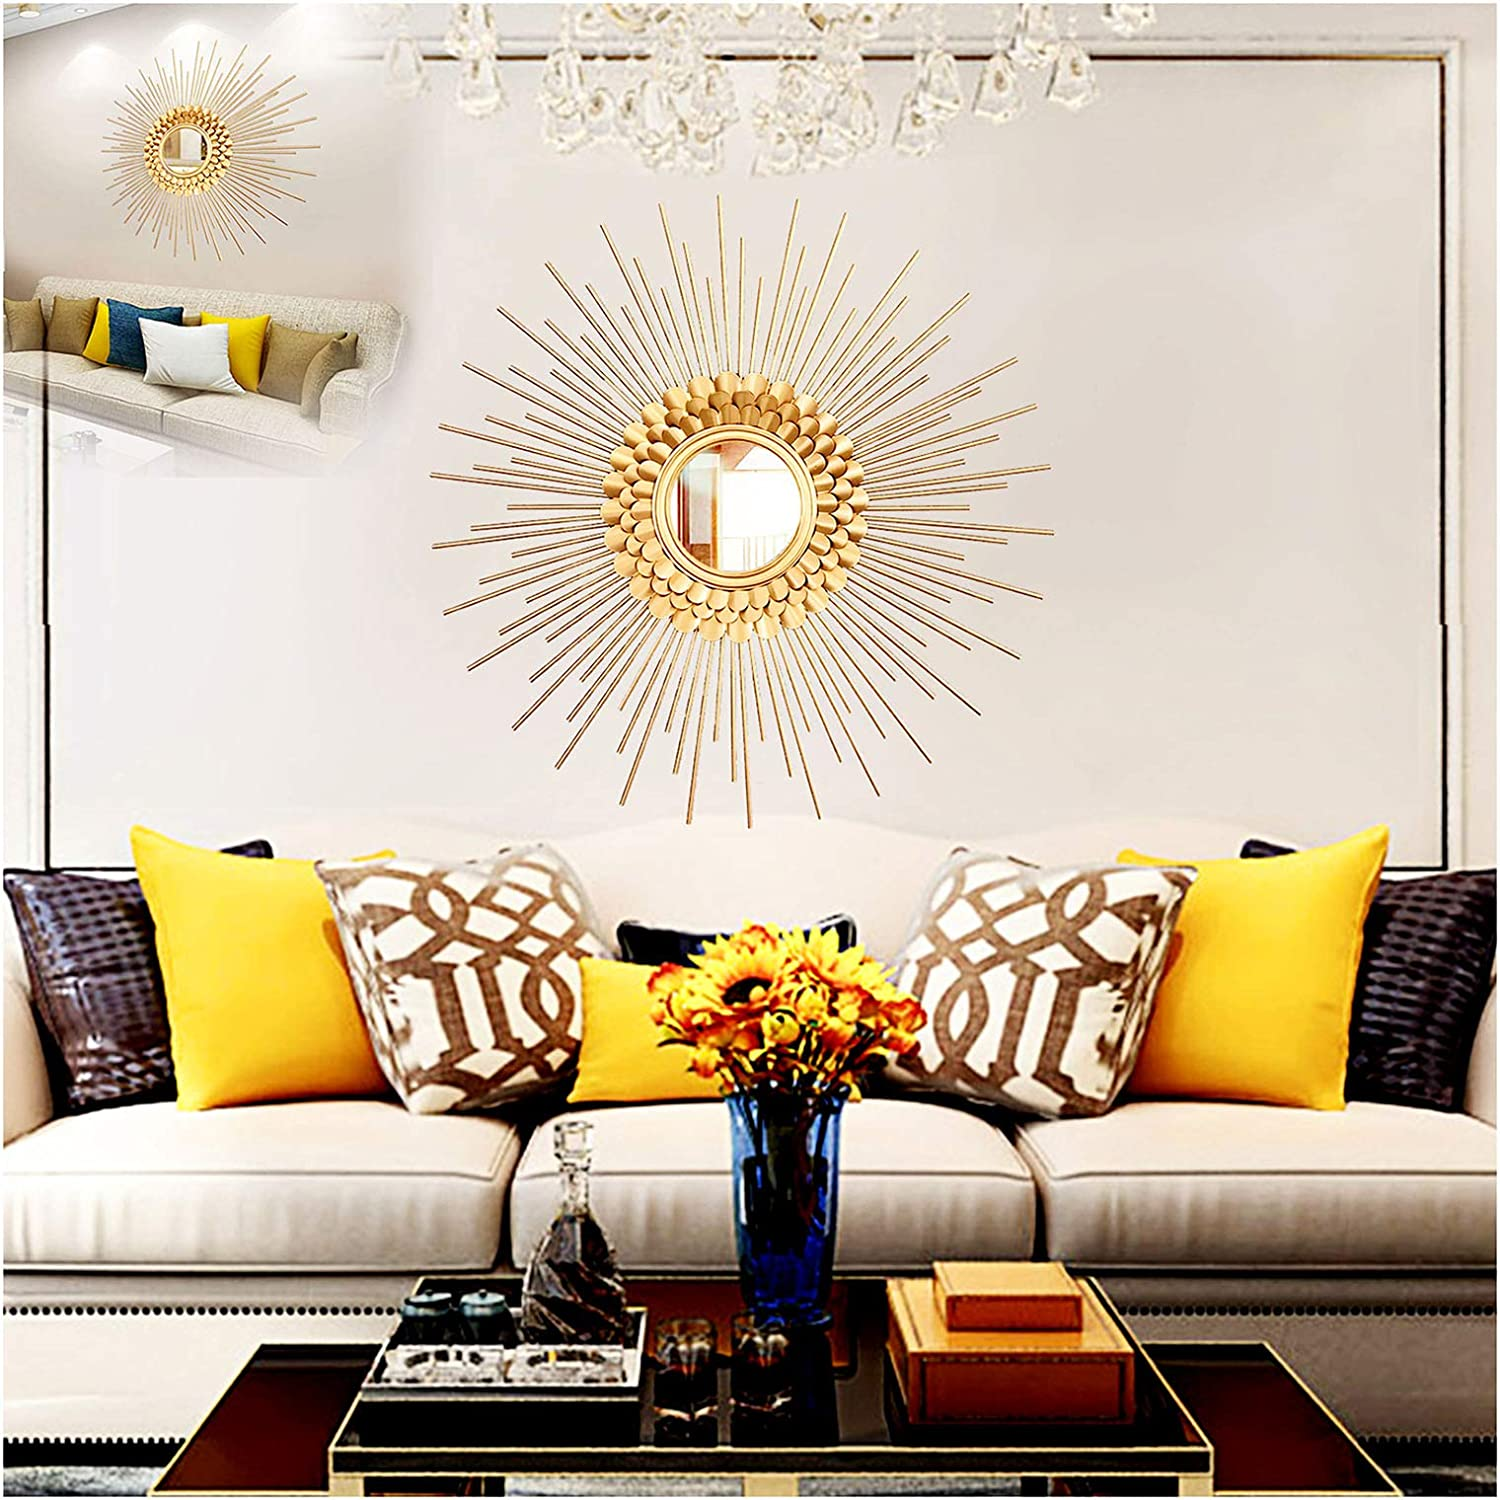 Round Wall Mirrors for Hallway and Living Room , Large Sunburst Mirror Decorative Wall Mountable Shabby Chic Home Decor Wall Mounted Mirrors ,Gold,80cm